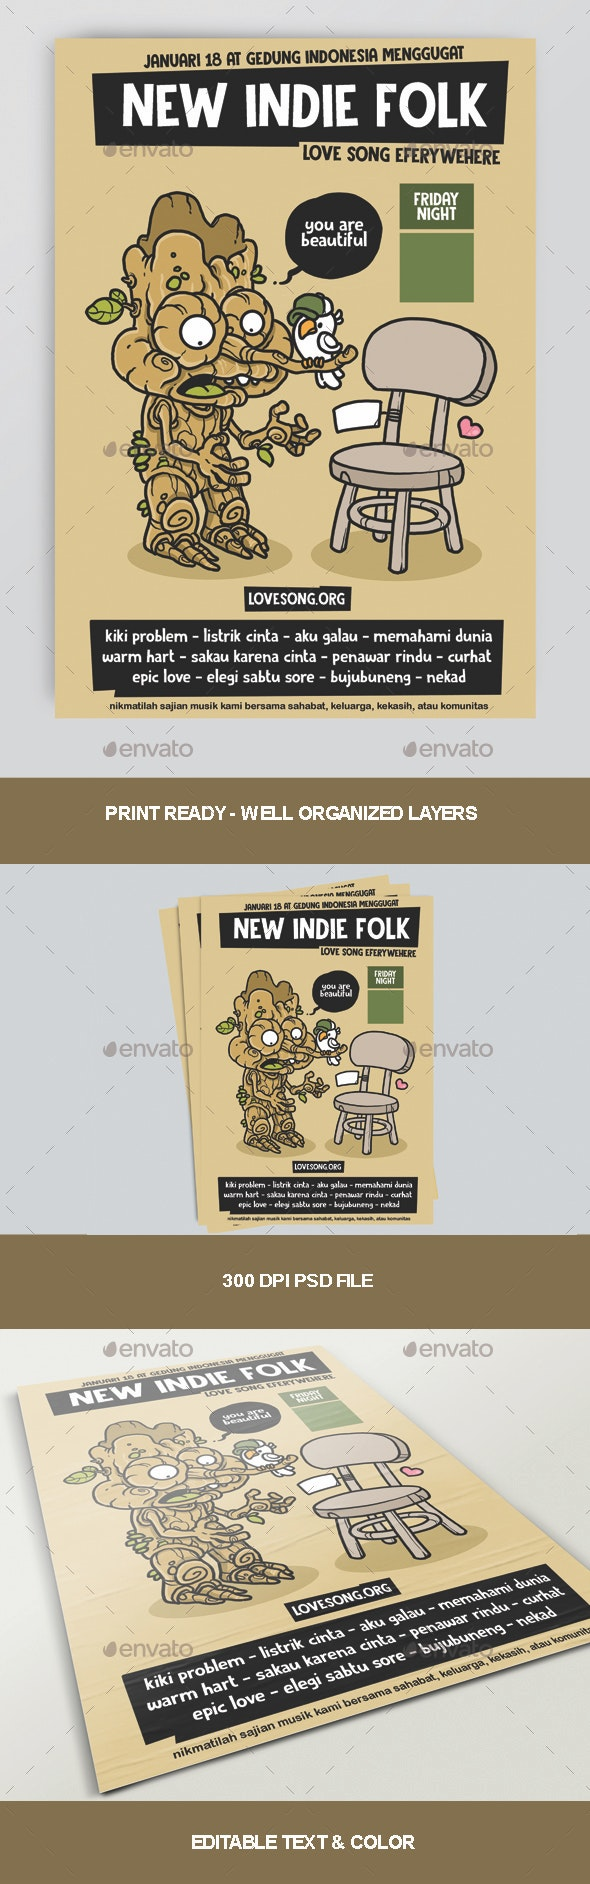 New Indie Folk Poster - Concerts Events